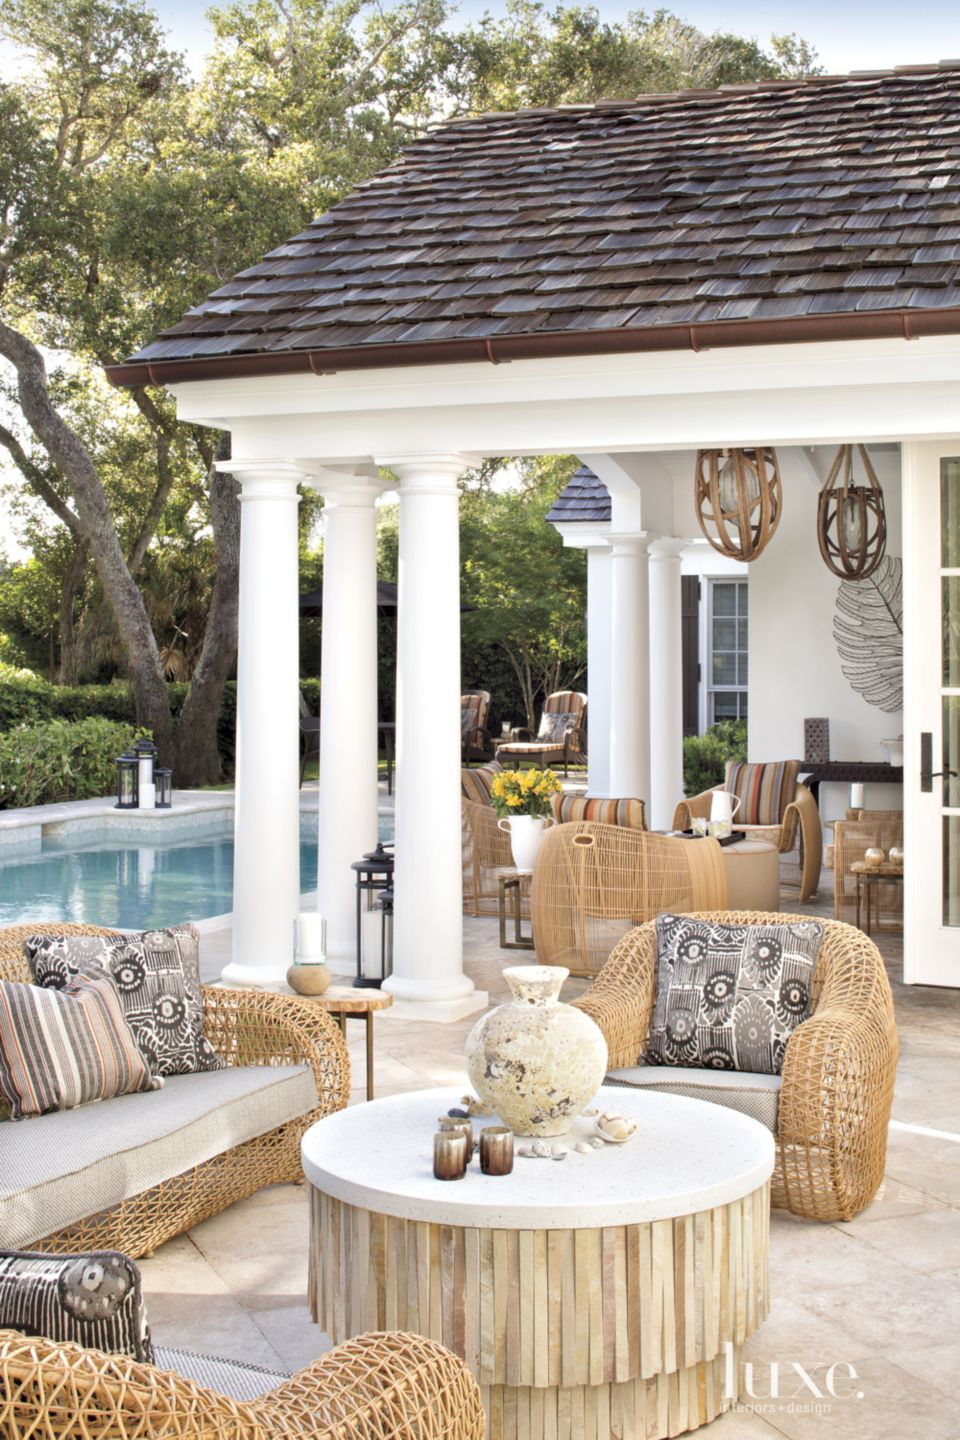 Contemporary Poolside Seating Area with Rattan Furnishings